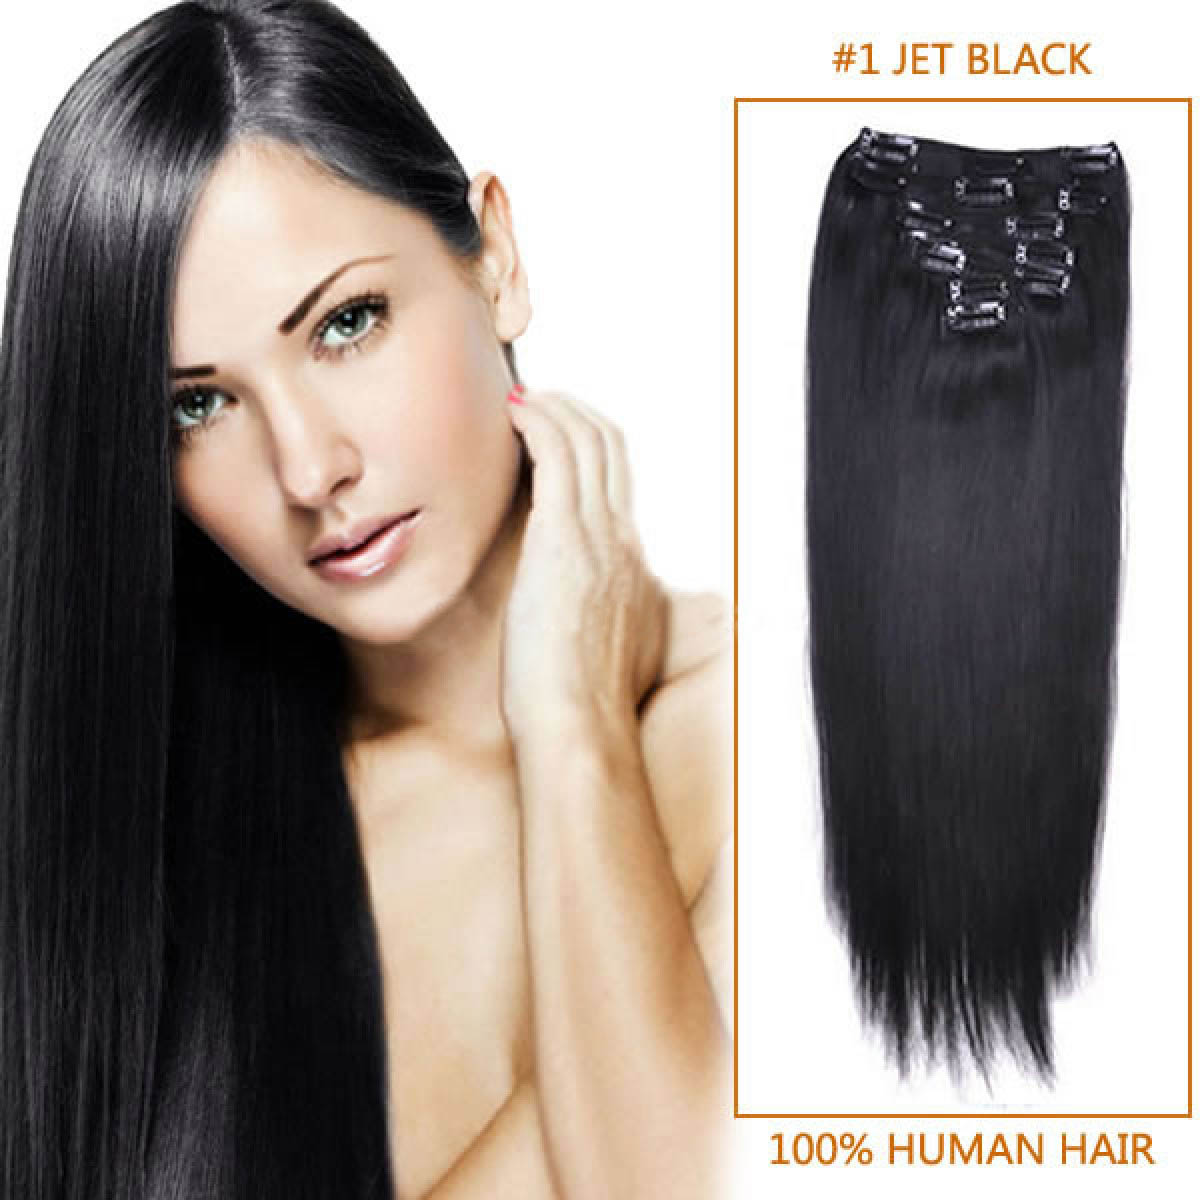 Inch 1 jet black clip in human hair extensions 11pcs 24 inch 1 jet black clip in human hair extensions 11pcs pmusecretfo Image collections